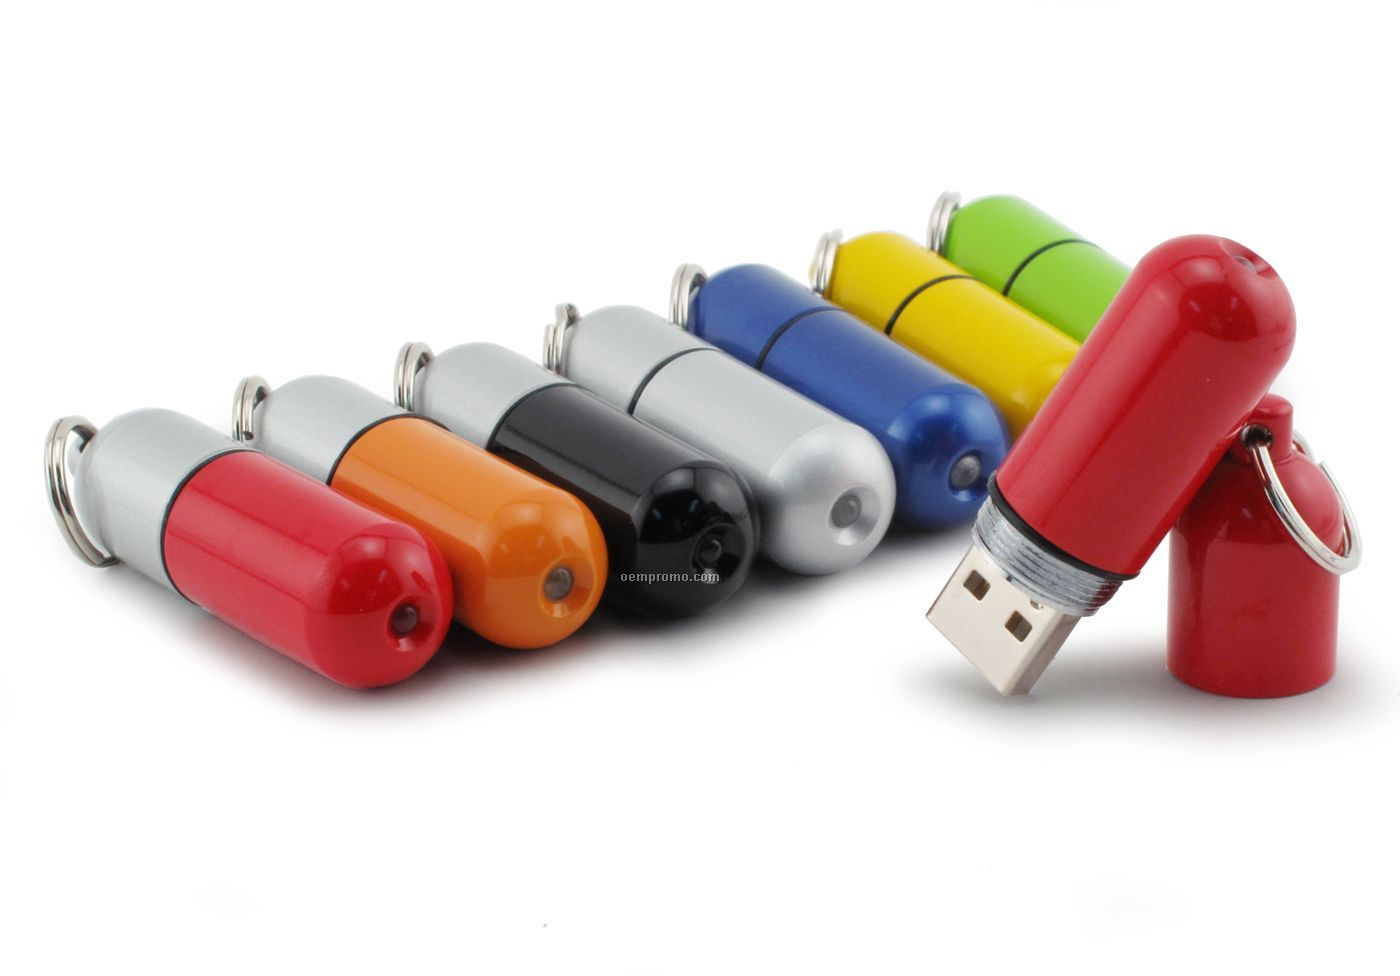 8 Gb Specialty 300 Series USB Drive - Capsule